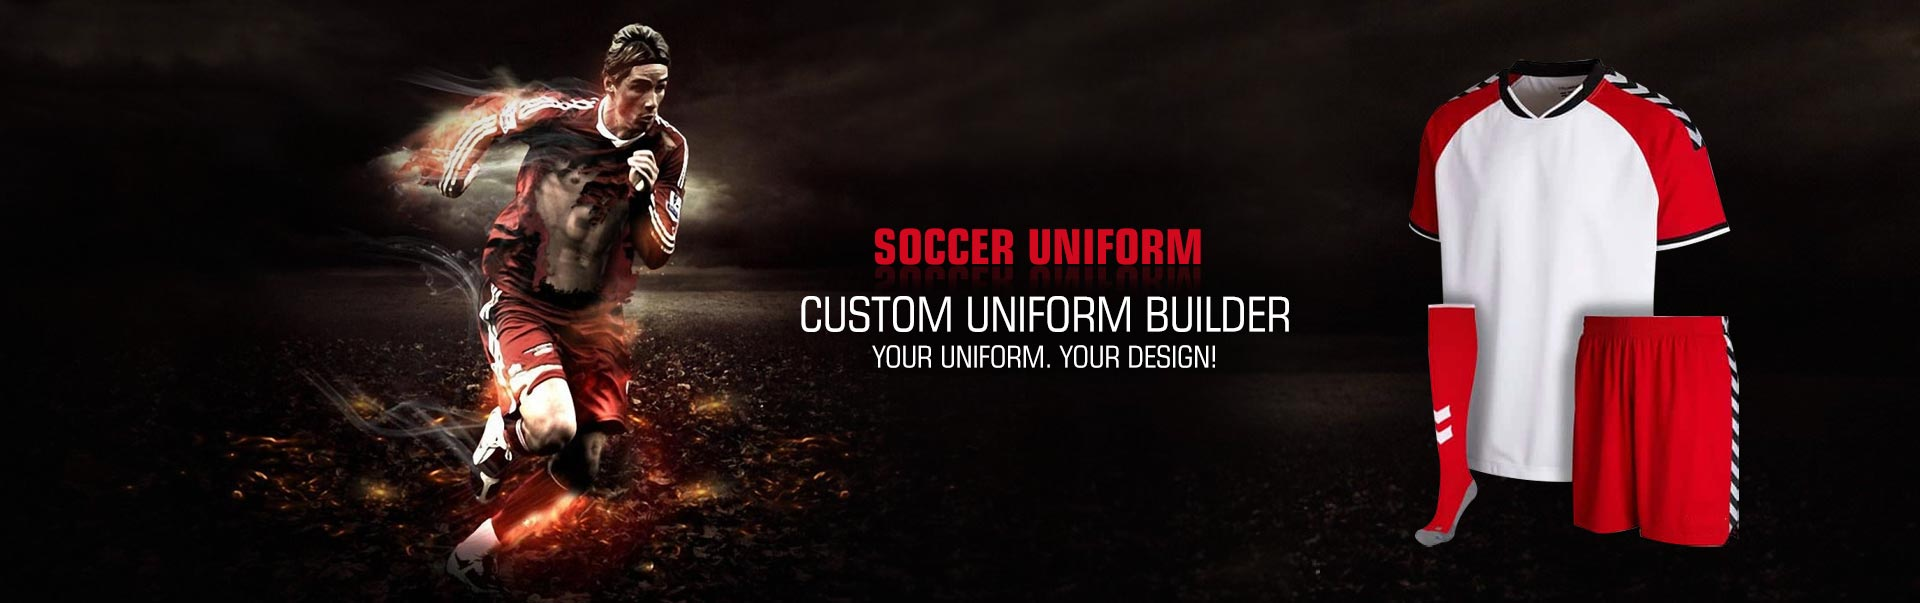 Soccer Uniform Wholesaler, Suppliers in Aurora